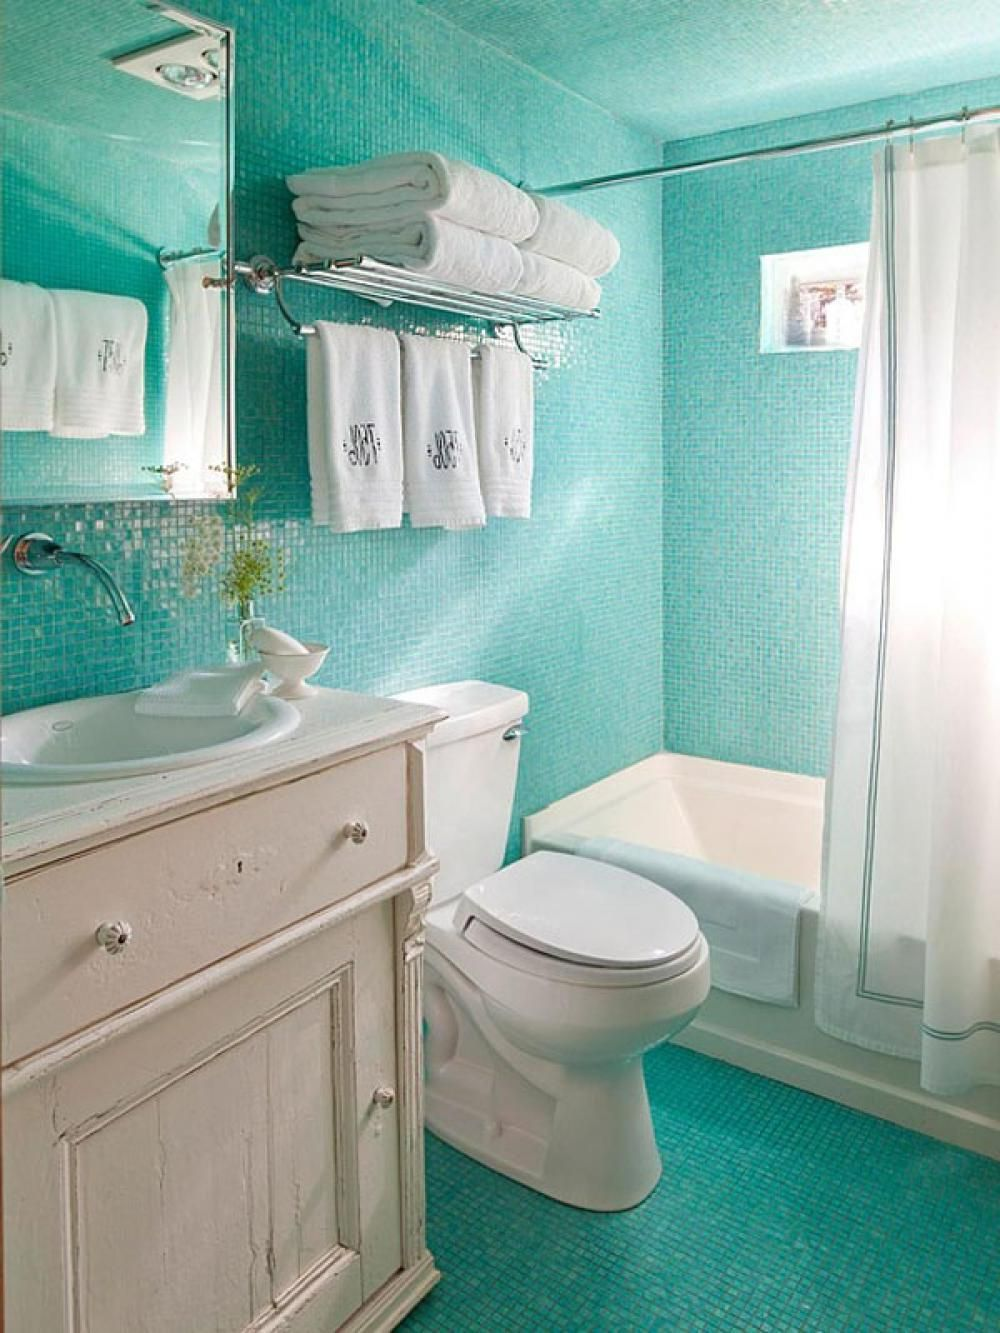 Chic Turquoise Mosaic Tiles Ocean Inspired Bathroom With White Vintage Bathroom Vanity And Built